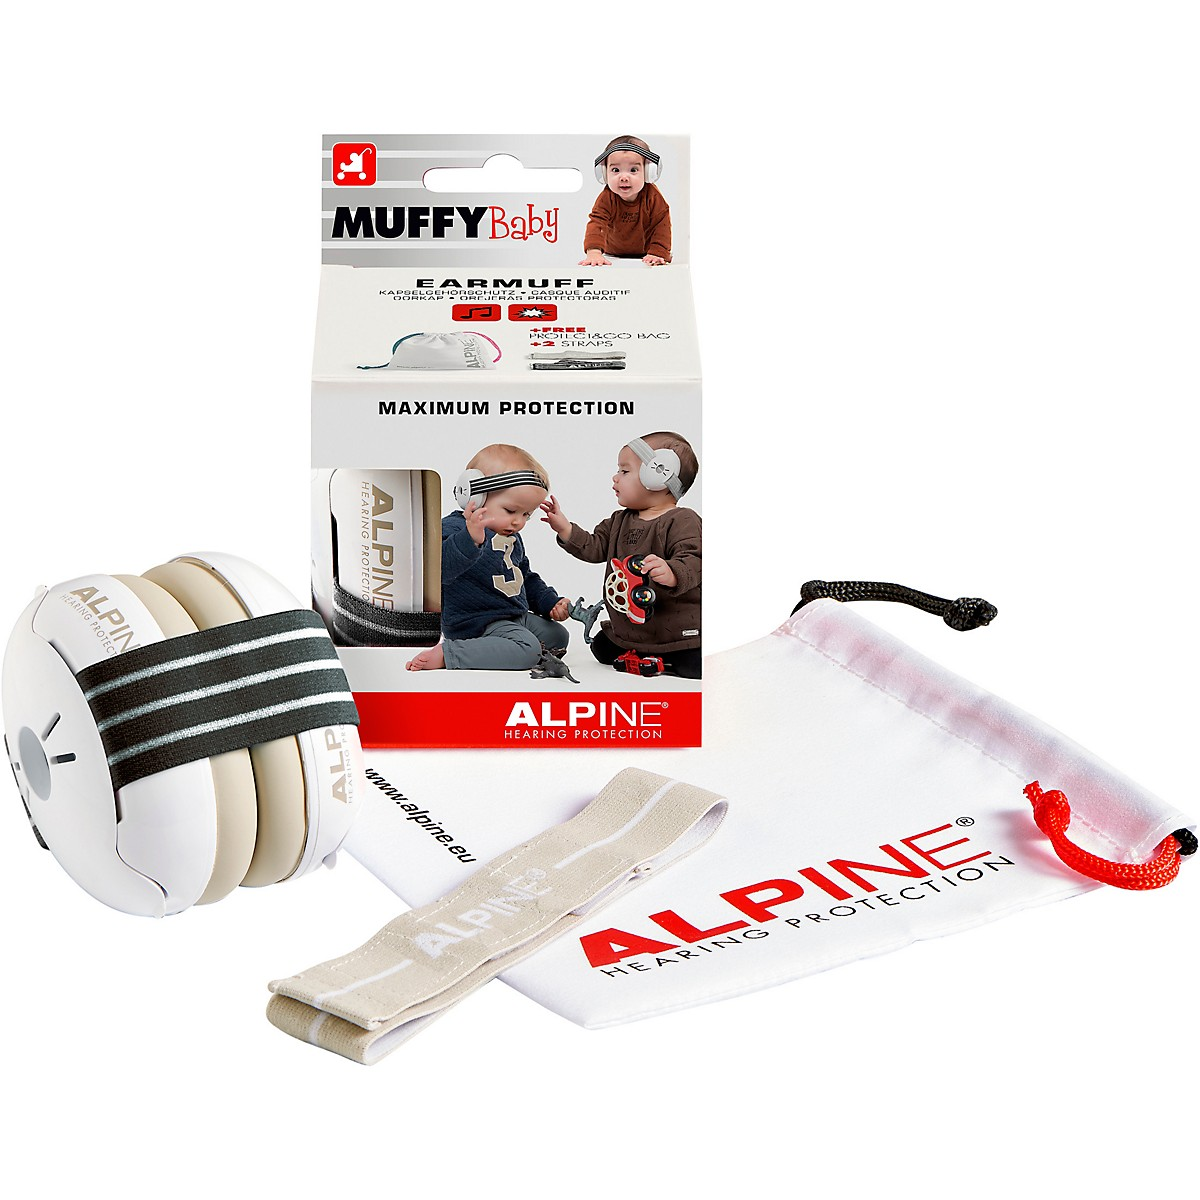 Alpine Hearing Protection Muffy Baby Black Protective Headphones